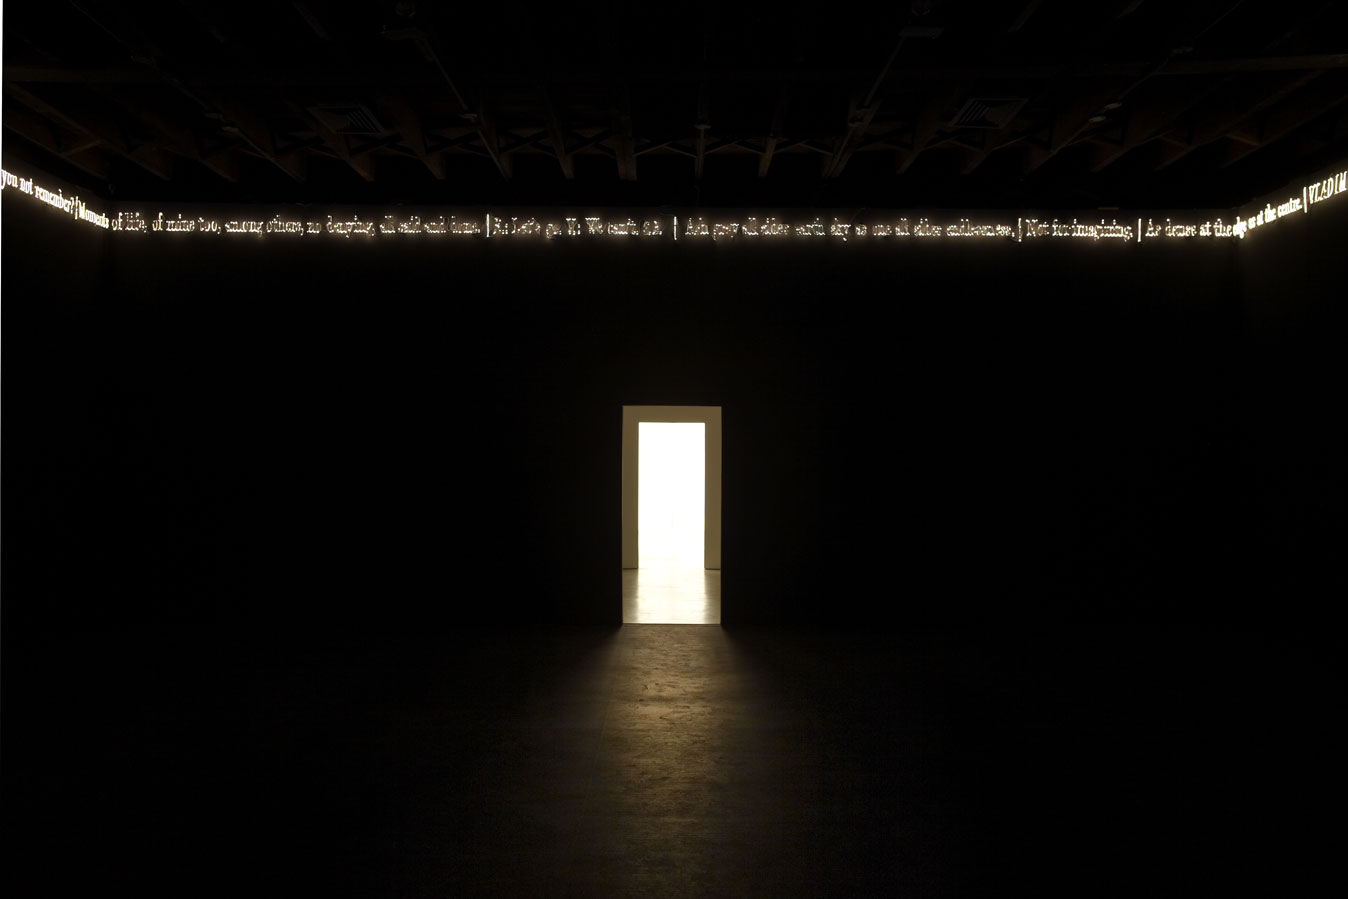 Blackened neon. Joseph Kosuth 'Text (waiting for-) for Nothing' Samuel Beckett, in play. Sean Kelly Gallery, New York, USA. Production and installation: Neonlauro, March 2011.